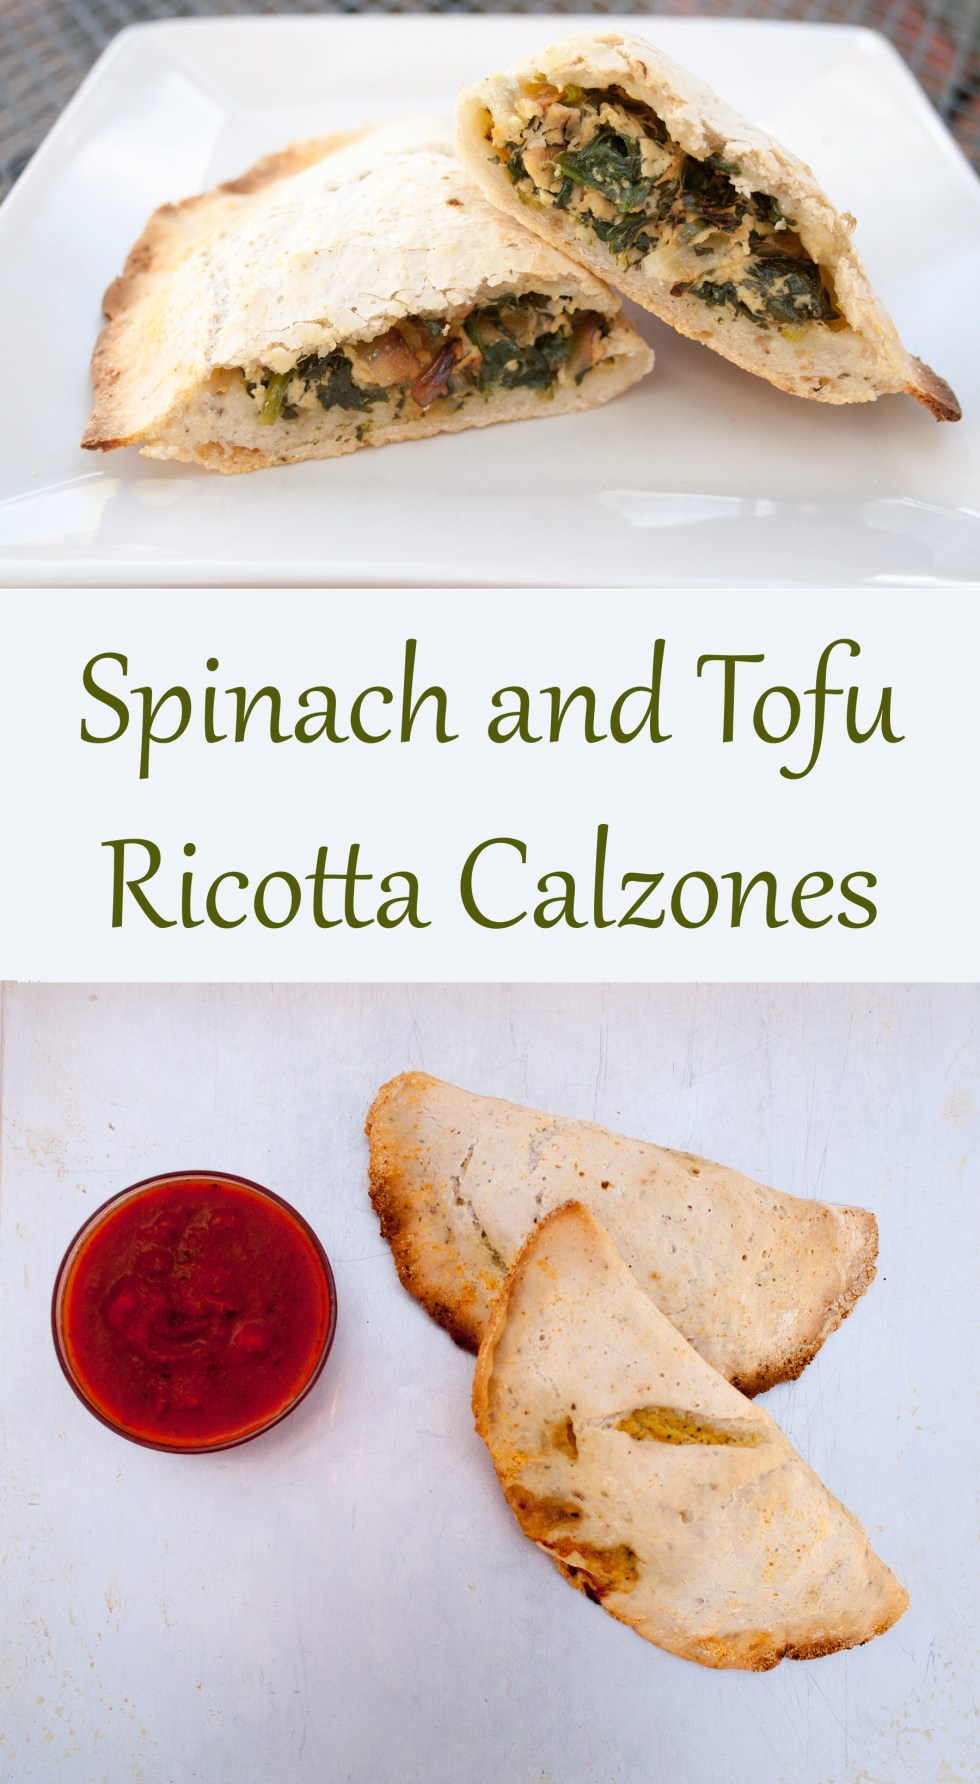 Spinach and Tofu Ricotta Calzones (vegan, gluten free) - Want to change up pizza night? This recipe for vegan calzones is the perfect choice!